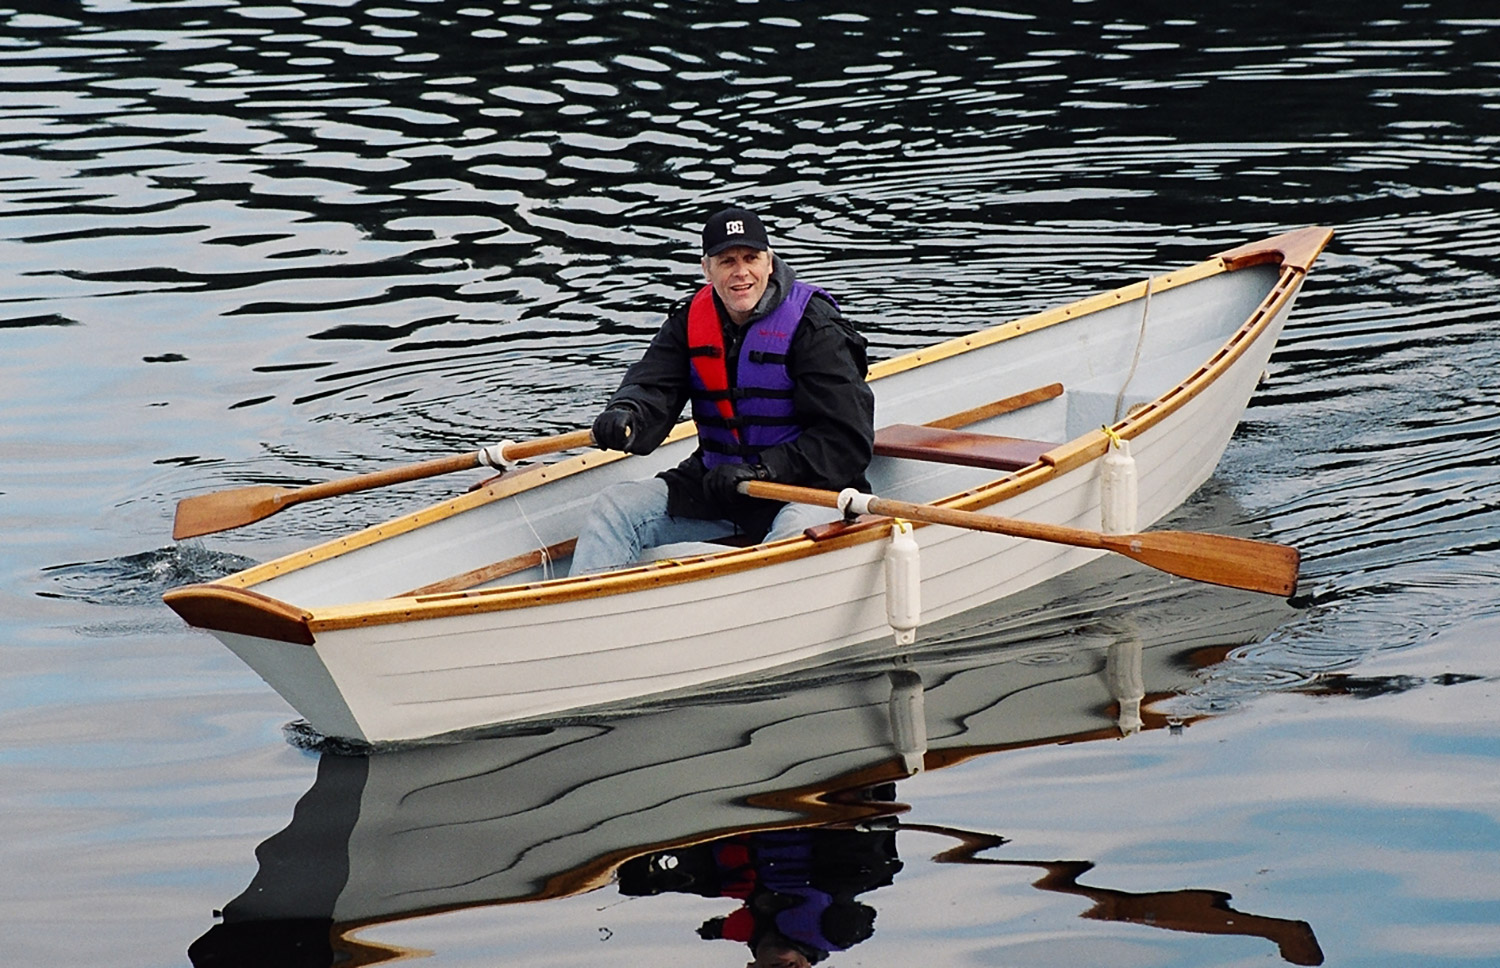 Man with cap and lifevest in a rowboat